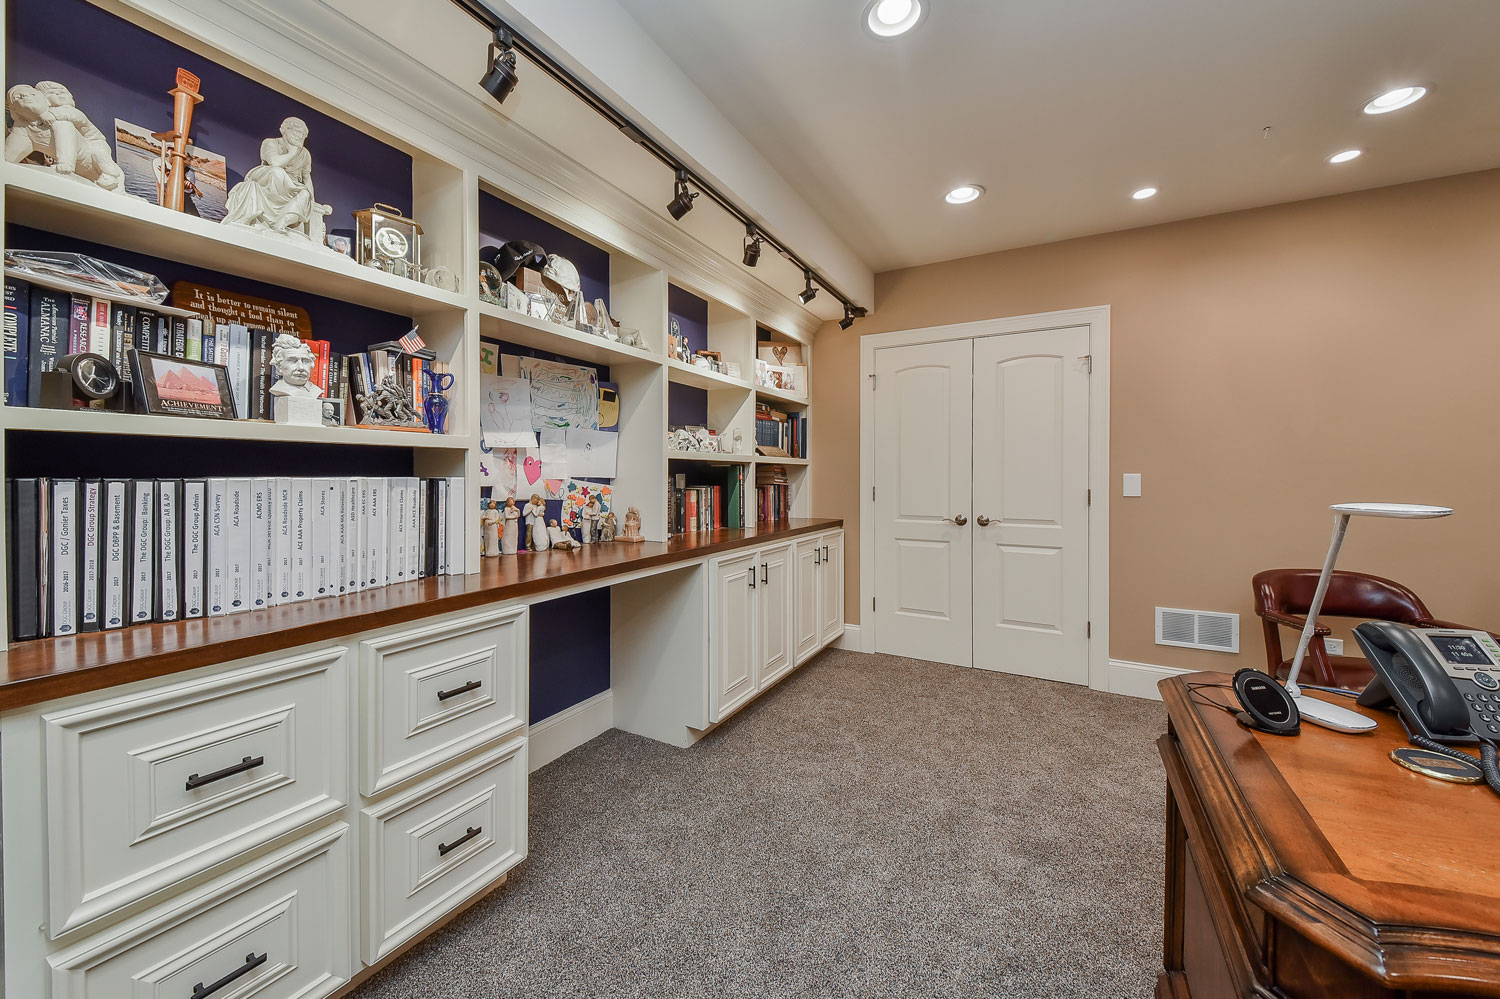 Downers Grove Basement Remodel with Sauna, Steam Shower, Office - Sebring Design